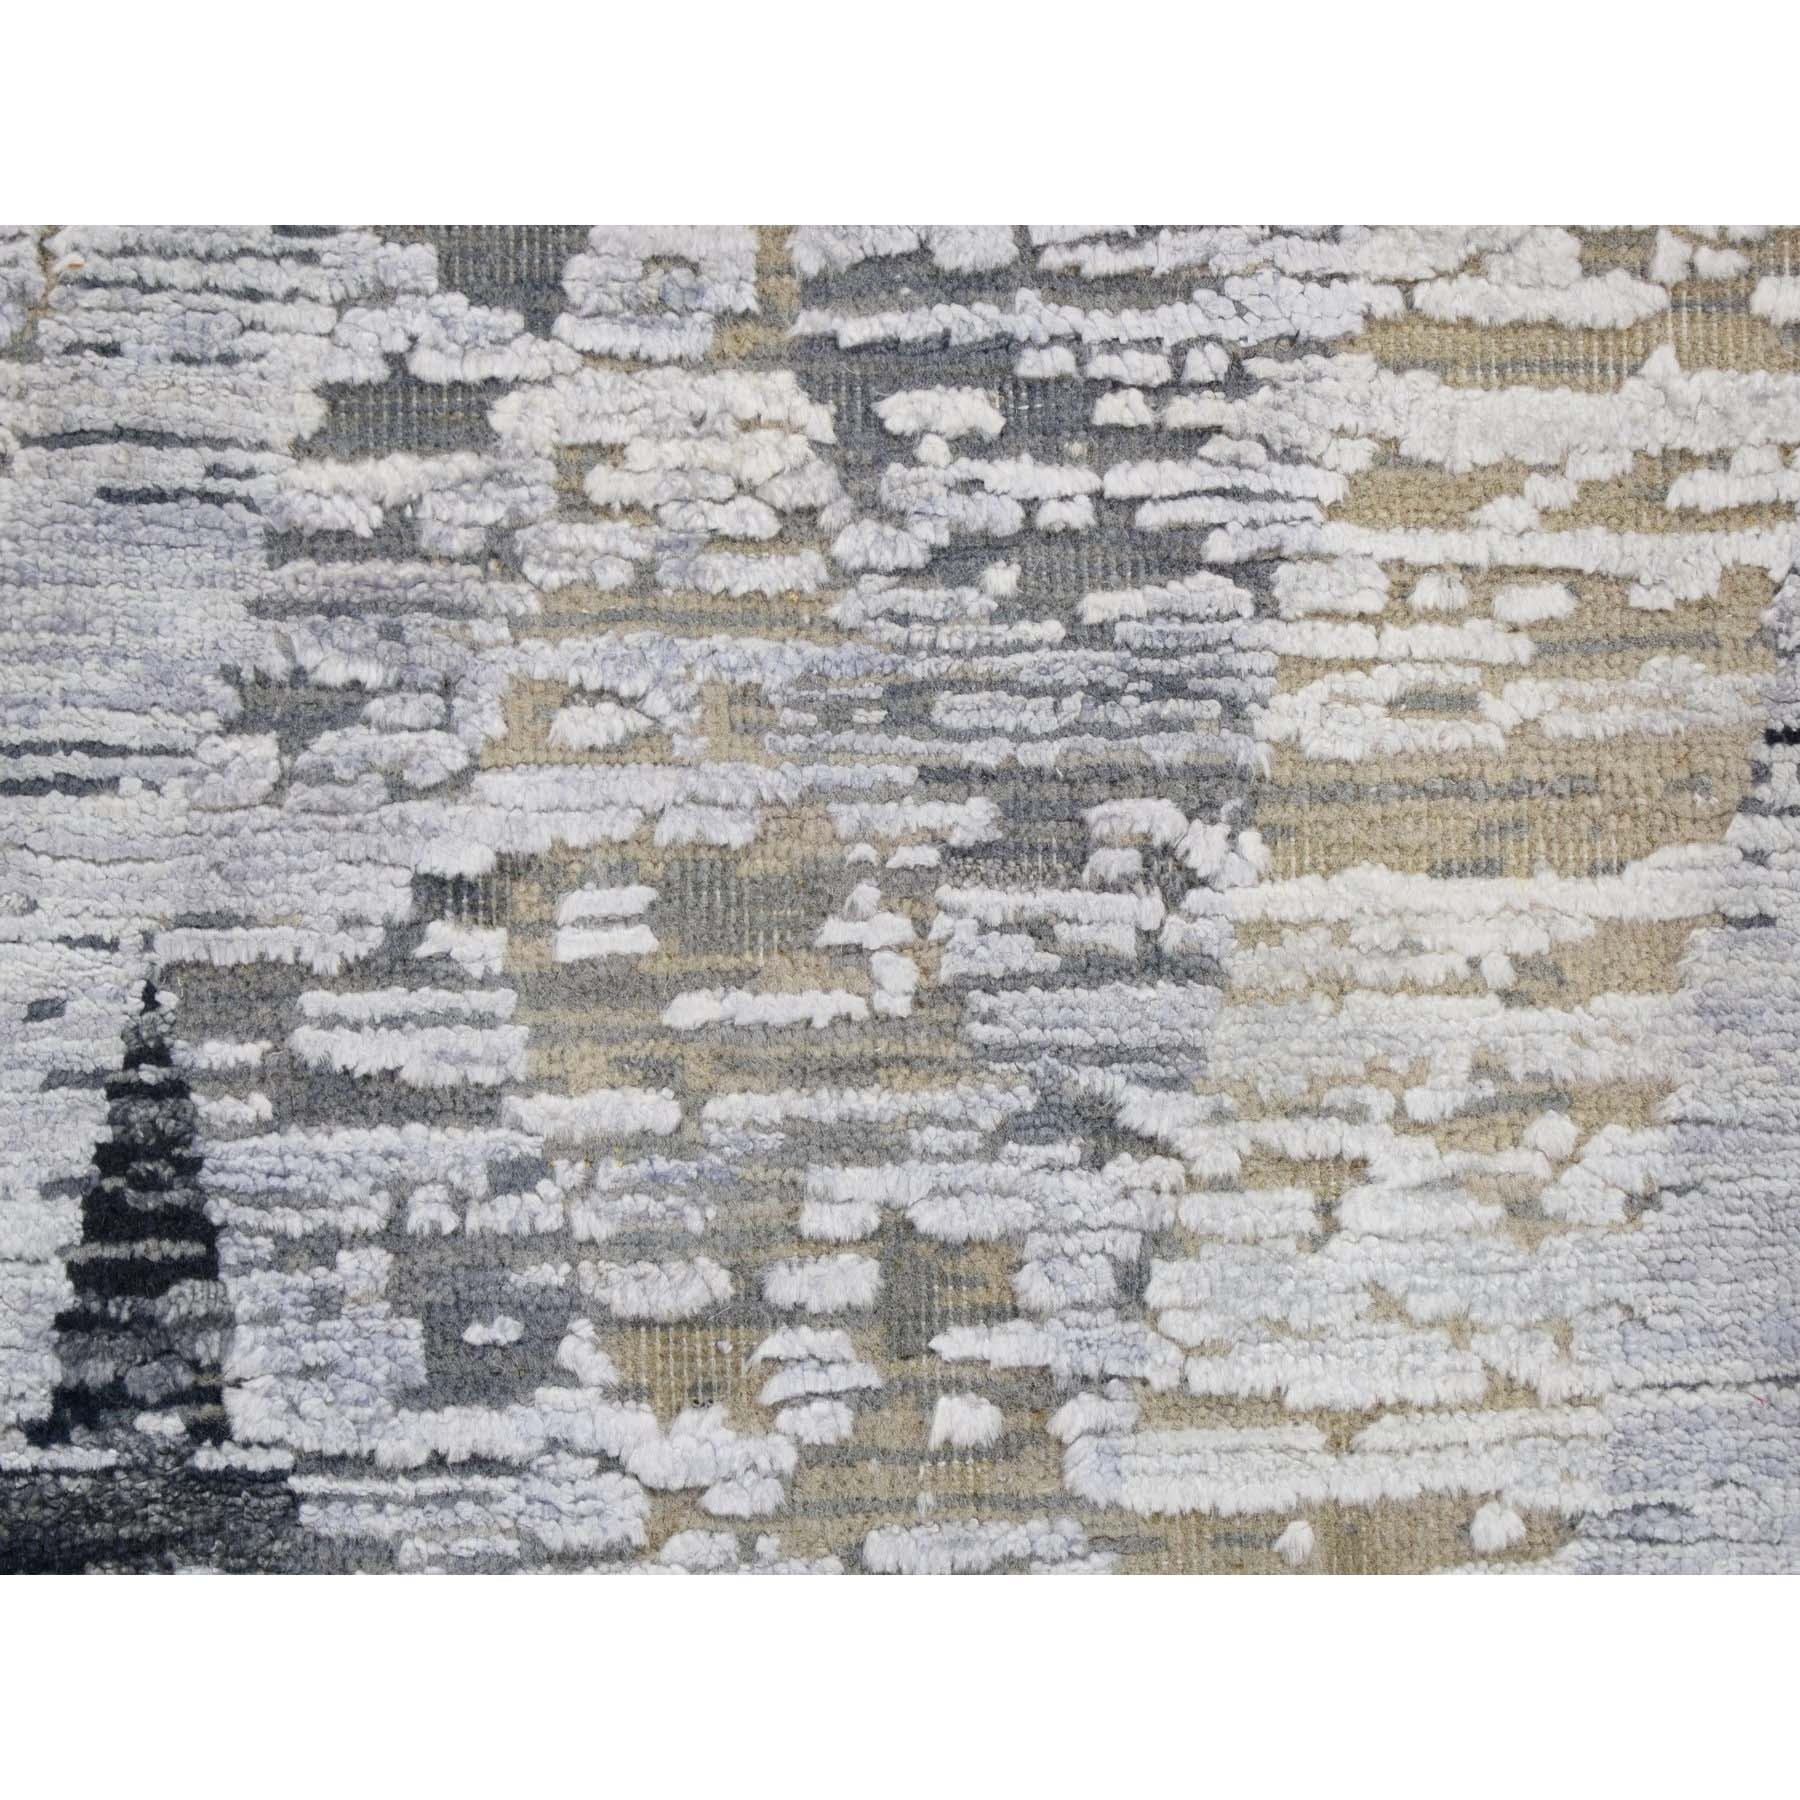 10'x14' DIMENSIONAL CURTAINS Gray Silk With Textured Wool Hand Knotted Oriental Rug